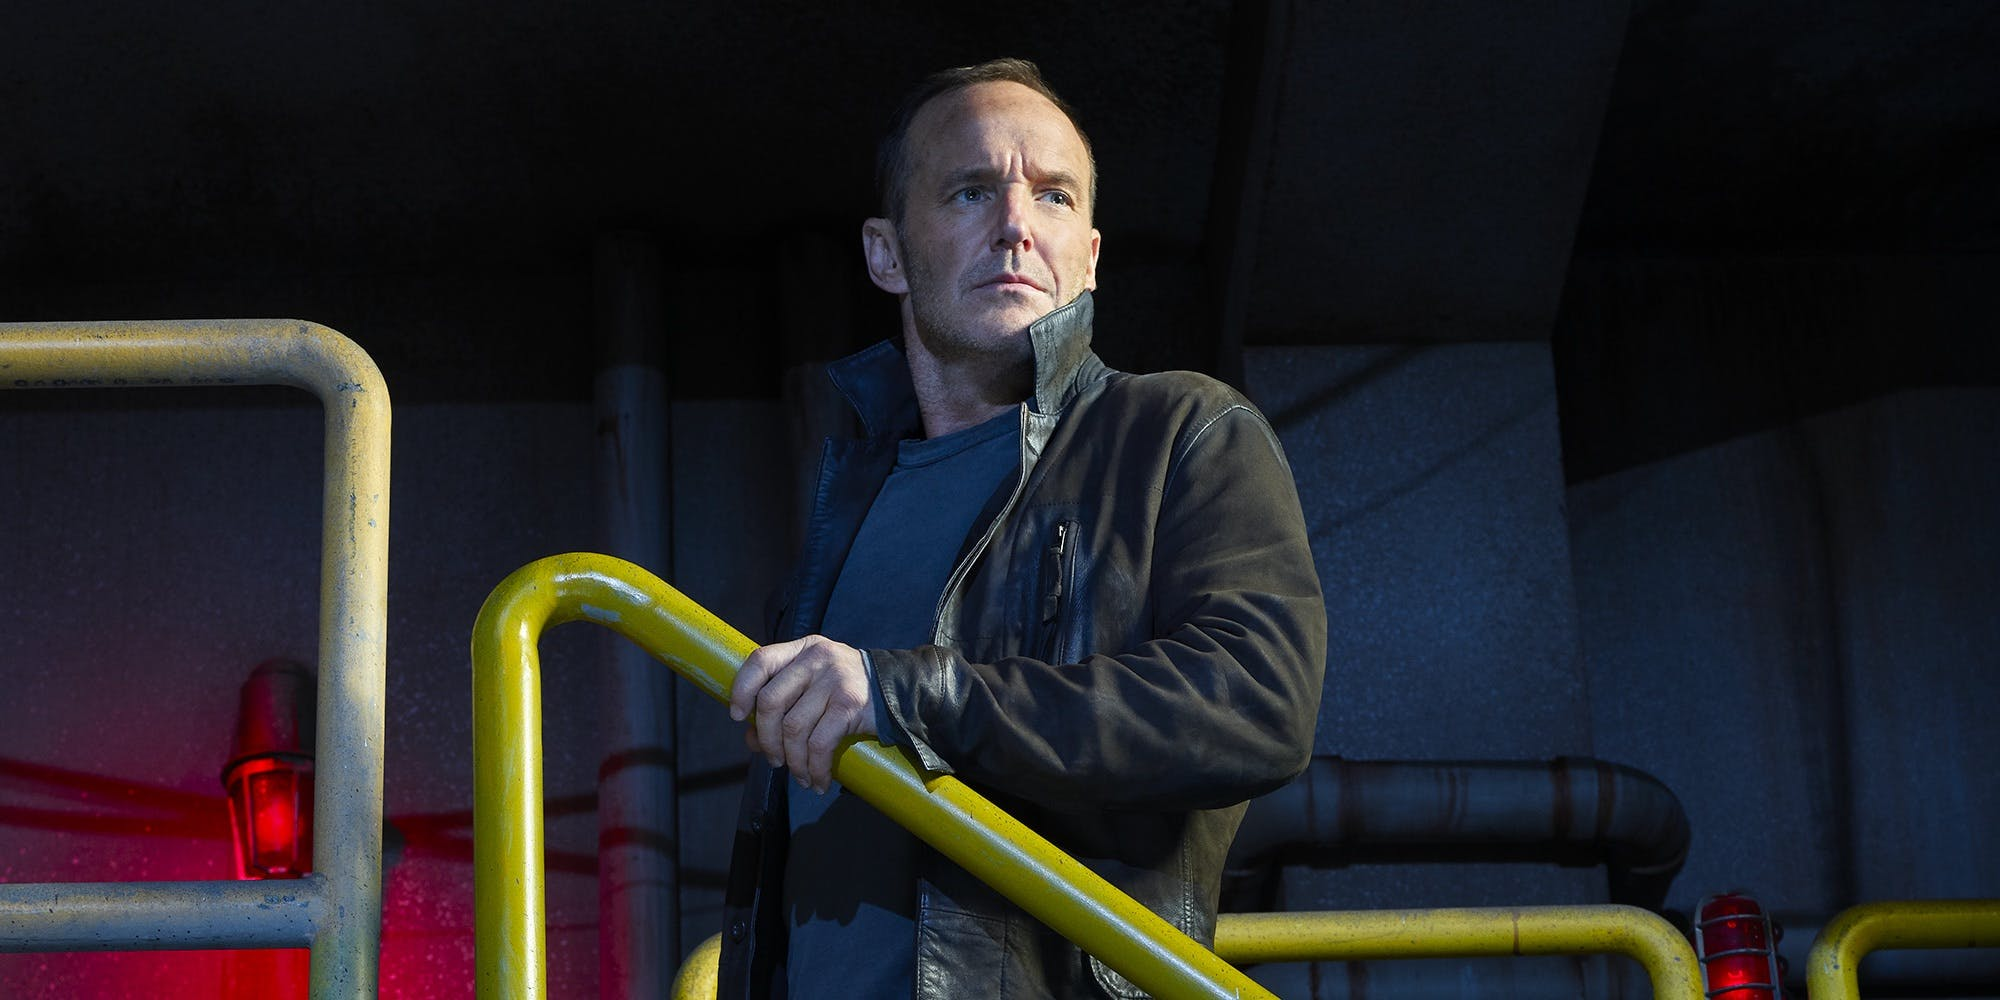 Clark Gregg Seems To Hint That AGENTS OF S.H.I.E.L.D Will End After Season 7